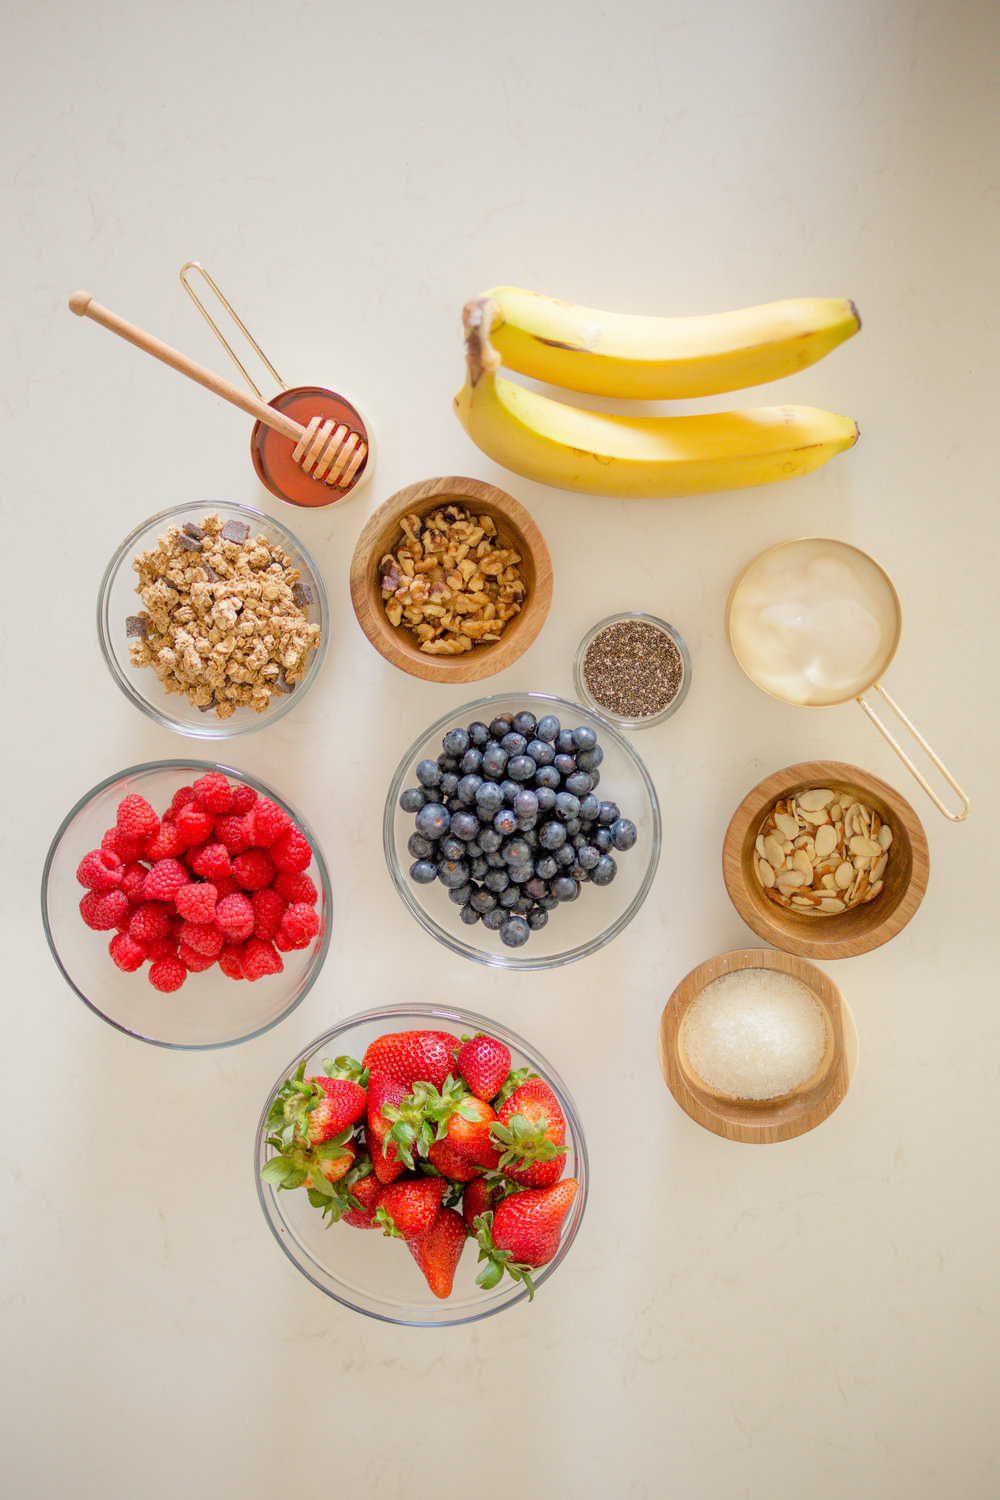 Flat lay of ingredients used for a healthy breakfast banana split: bananas, nuts, granola, raspberries, blueberries, honey, chia seeds, coconut yogurt